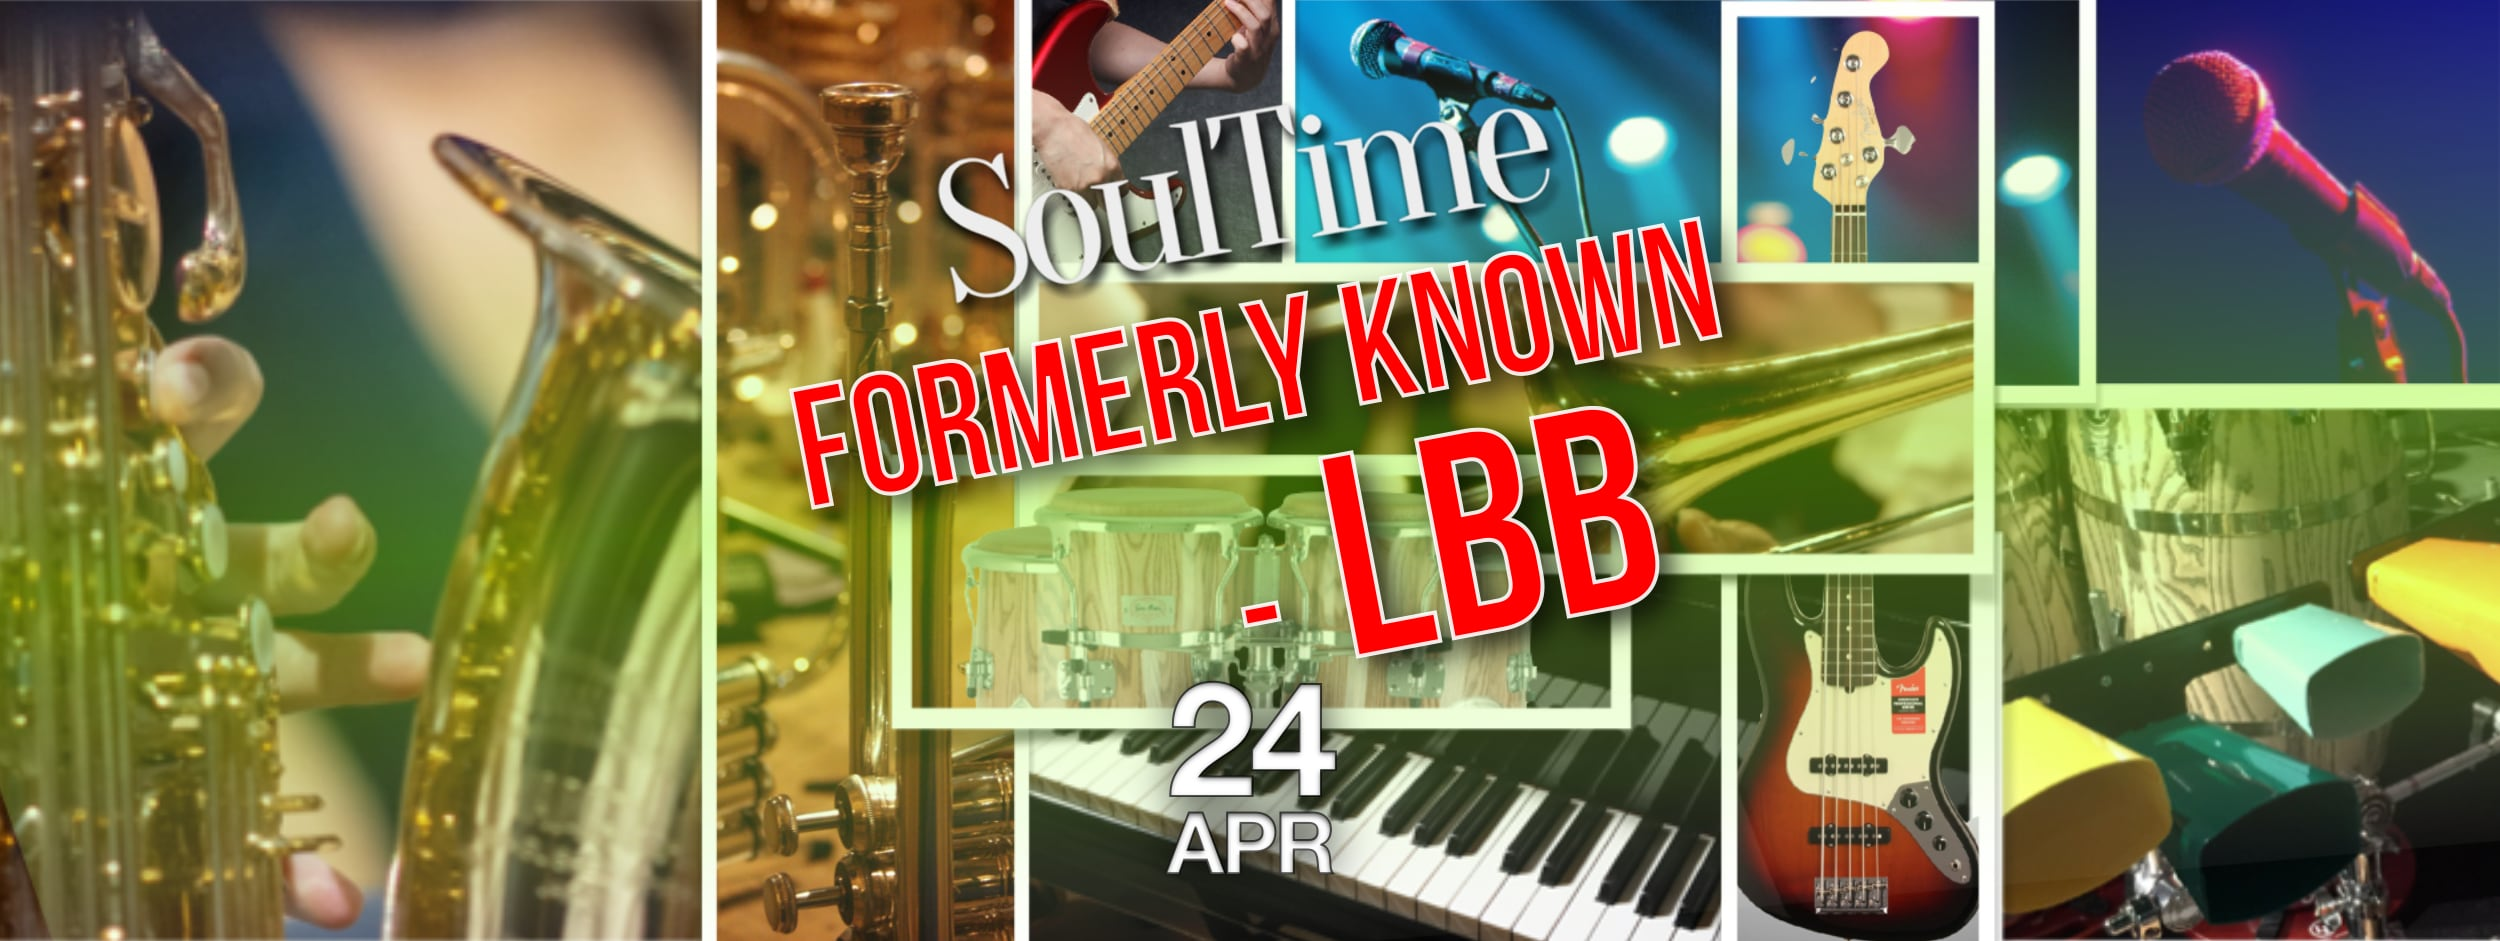 Formarly Known LBB apr2019